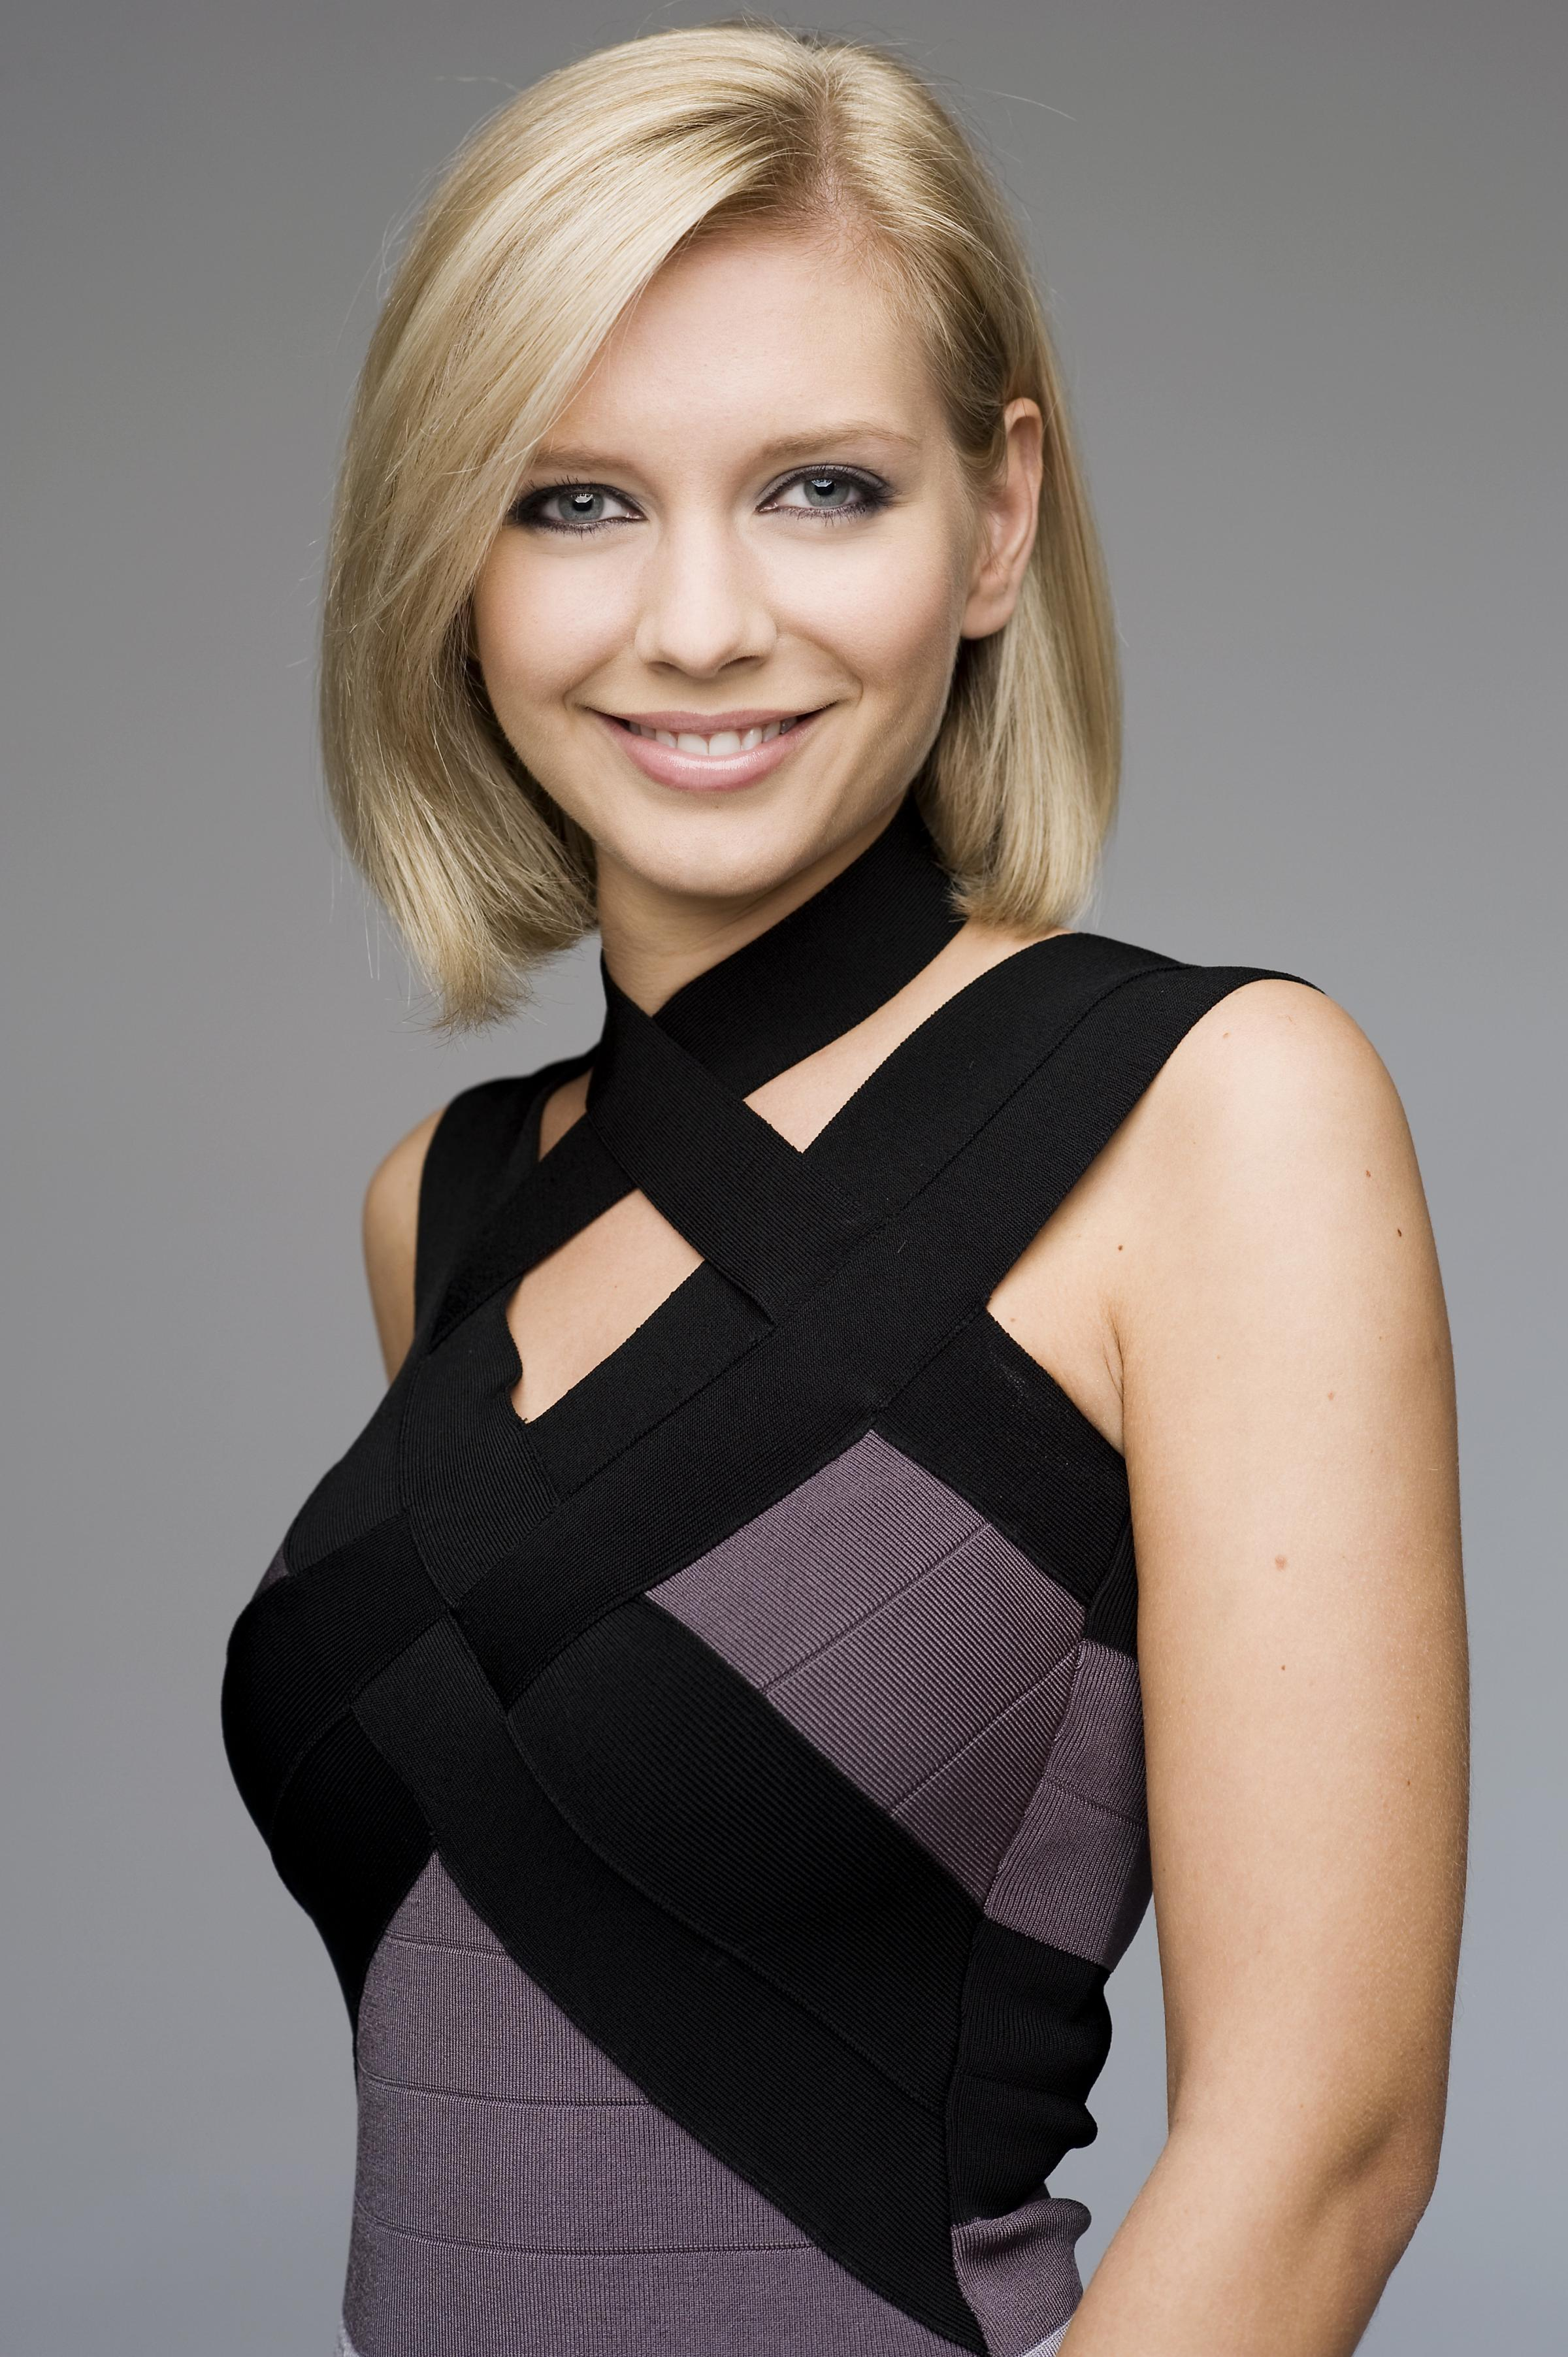 rachel-riley-boobs